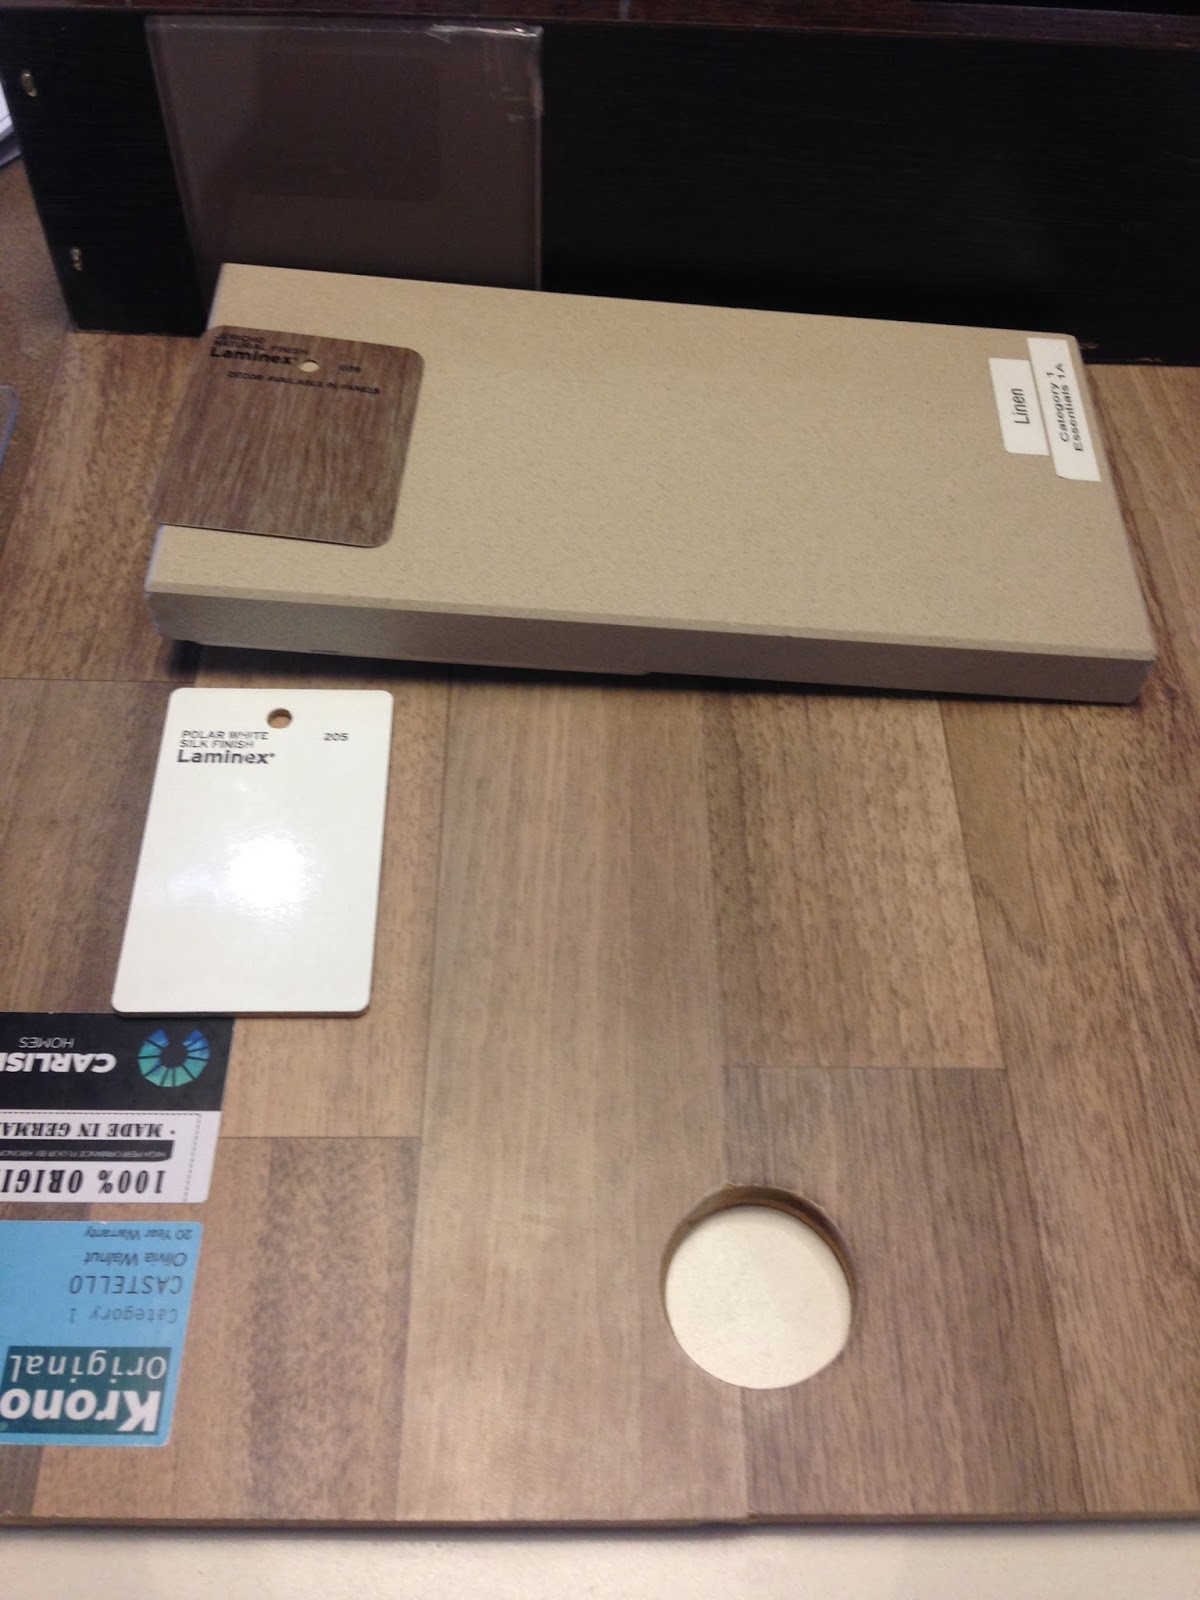 gl front kitchen cabinet doors with Jasonandkylie Blogspot on 2017 New Ikea Kitchen Cabi s furthermore Kitchen Cabi  Replacement Doors Glass Inserts also 28 Best Images Of Kitchen Cabi  Door Hinges Types additionally Diy Mirrored Cabi  Doors additionally Cremone Bolts For Kitchen Cabi s.